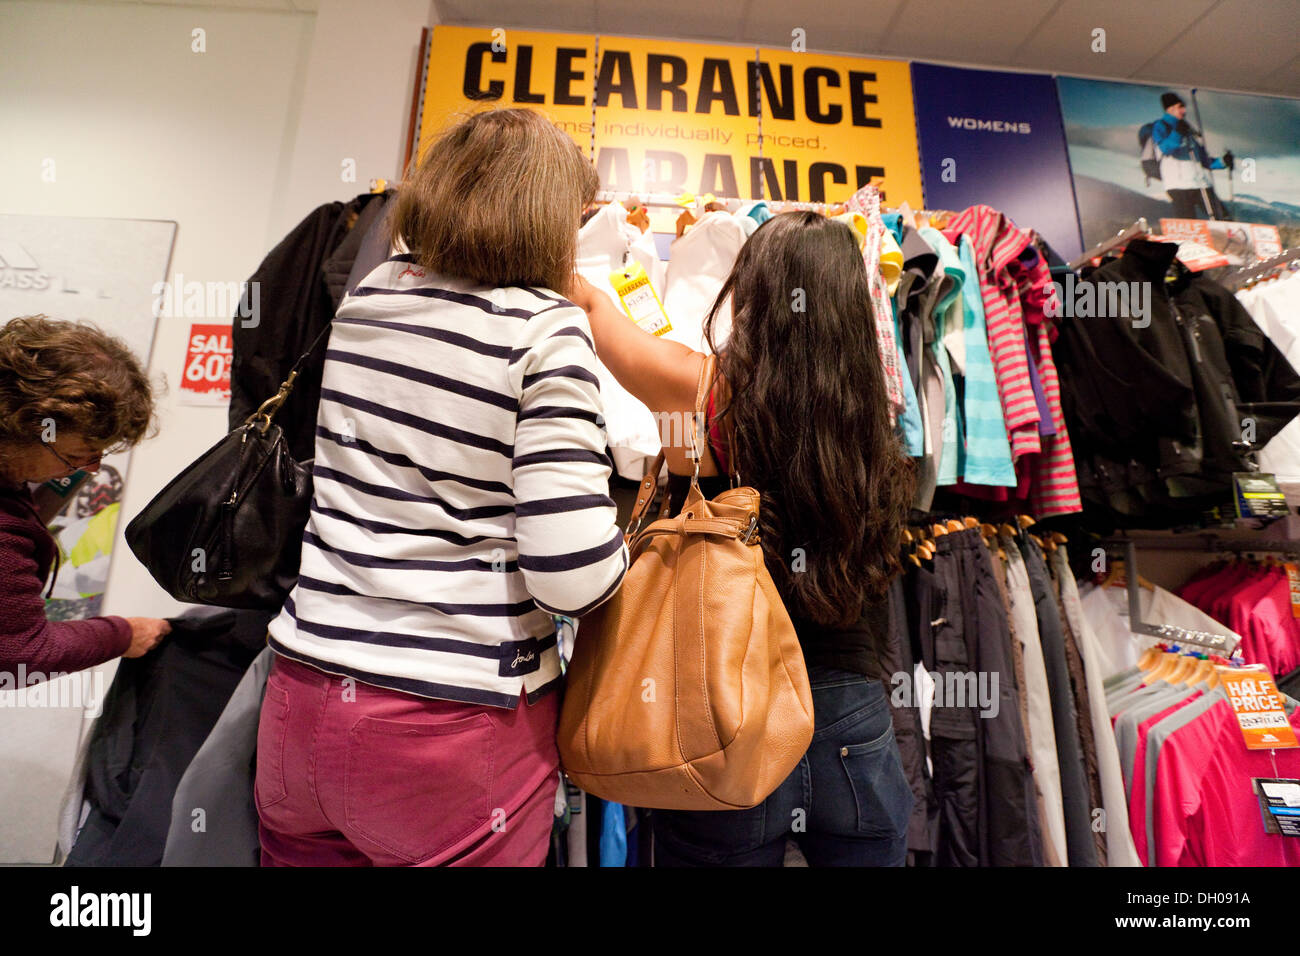 01720d13101 Women shopping for clothes in a store with a clearance sale